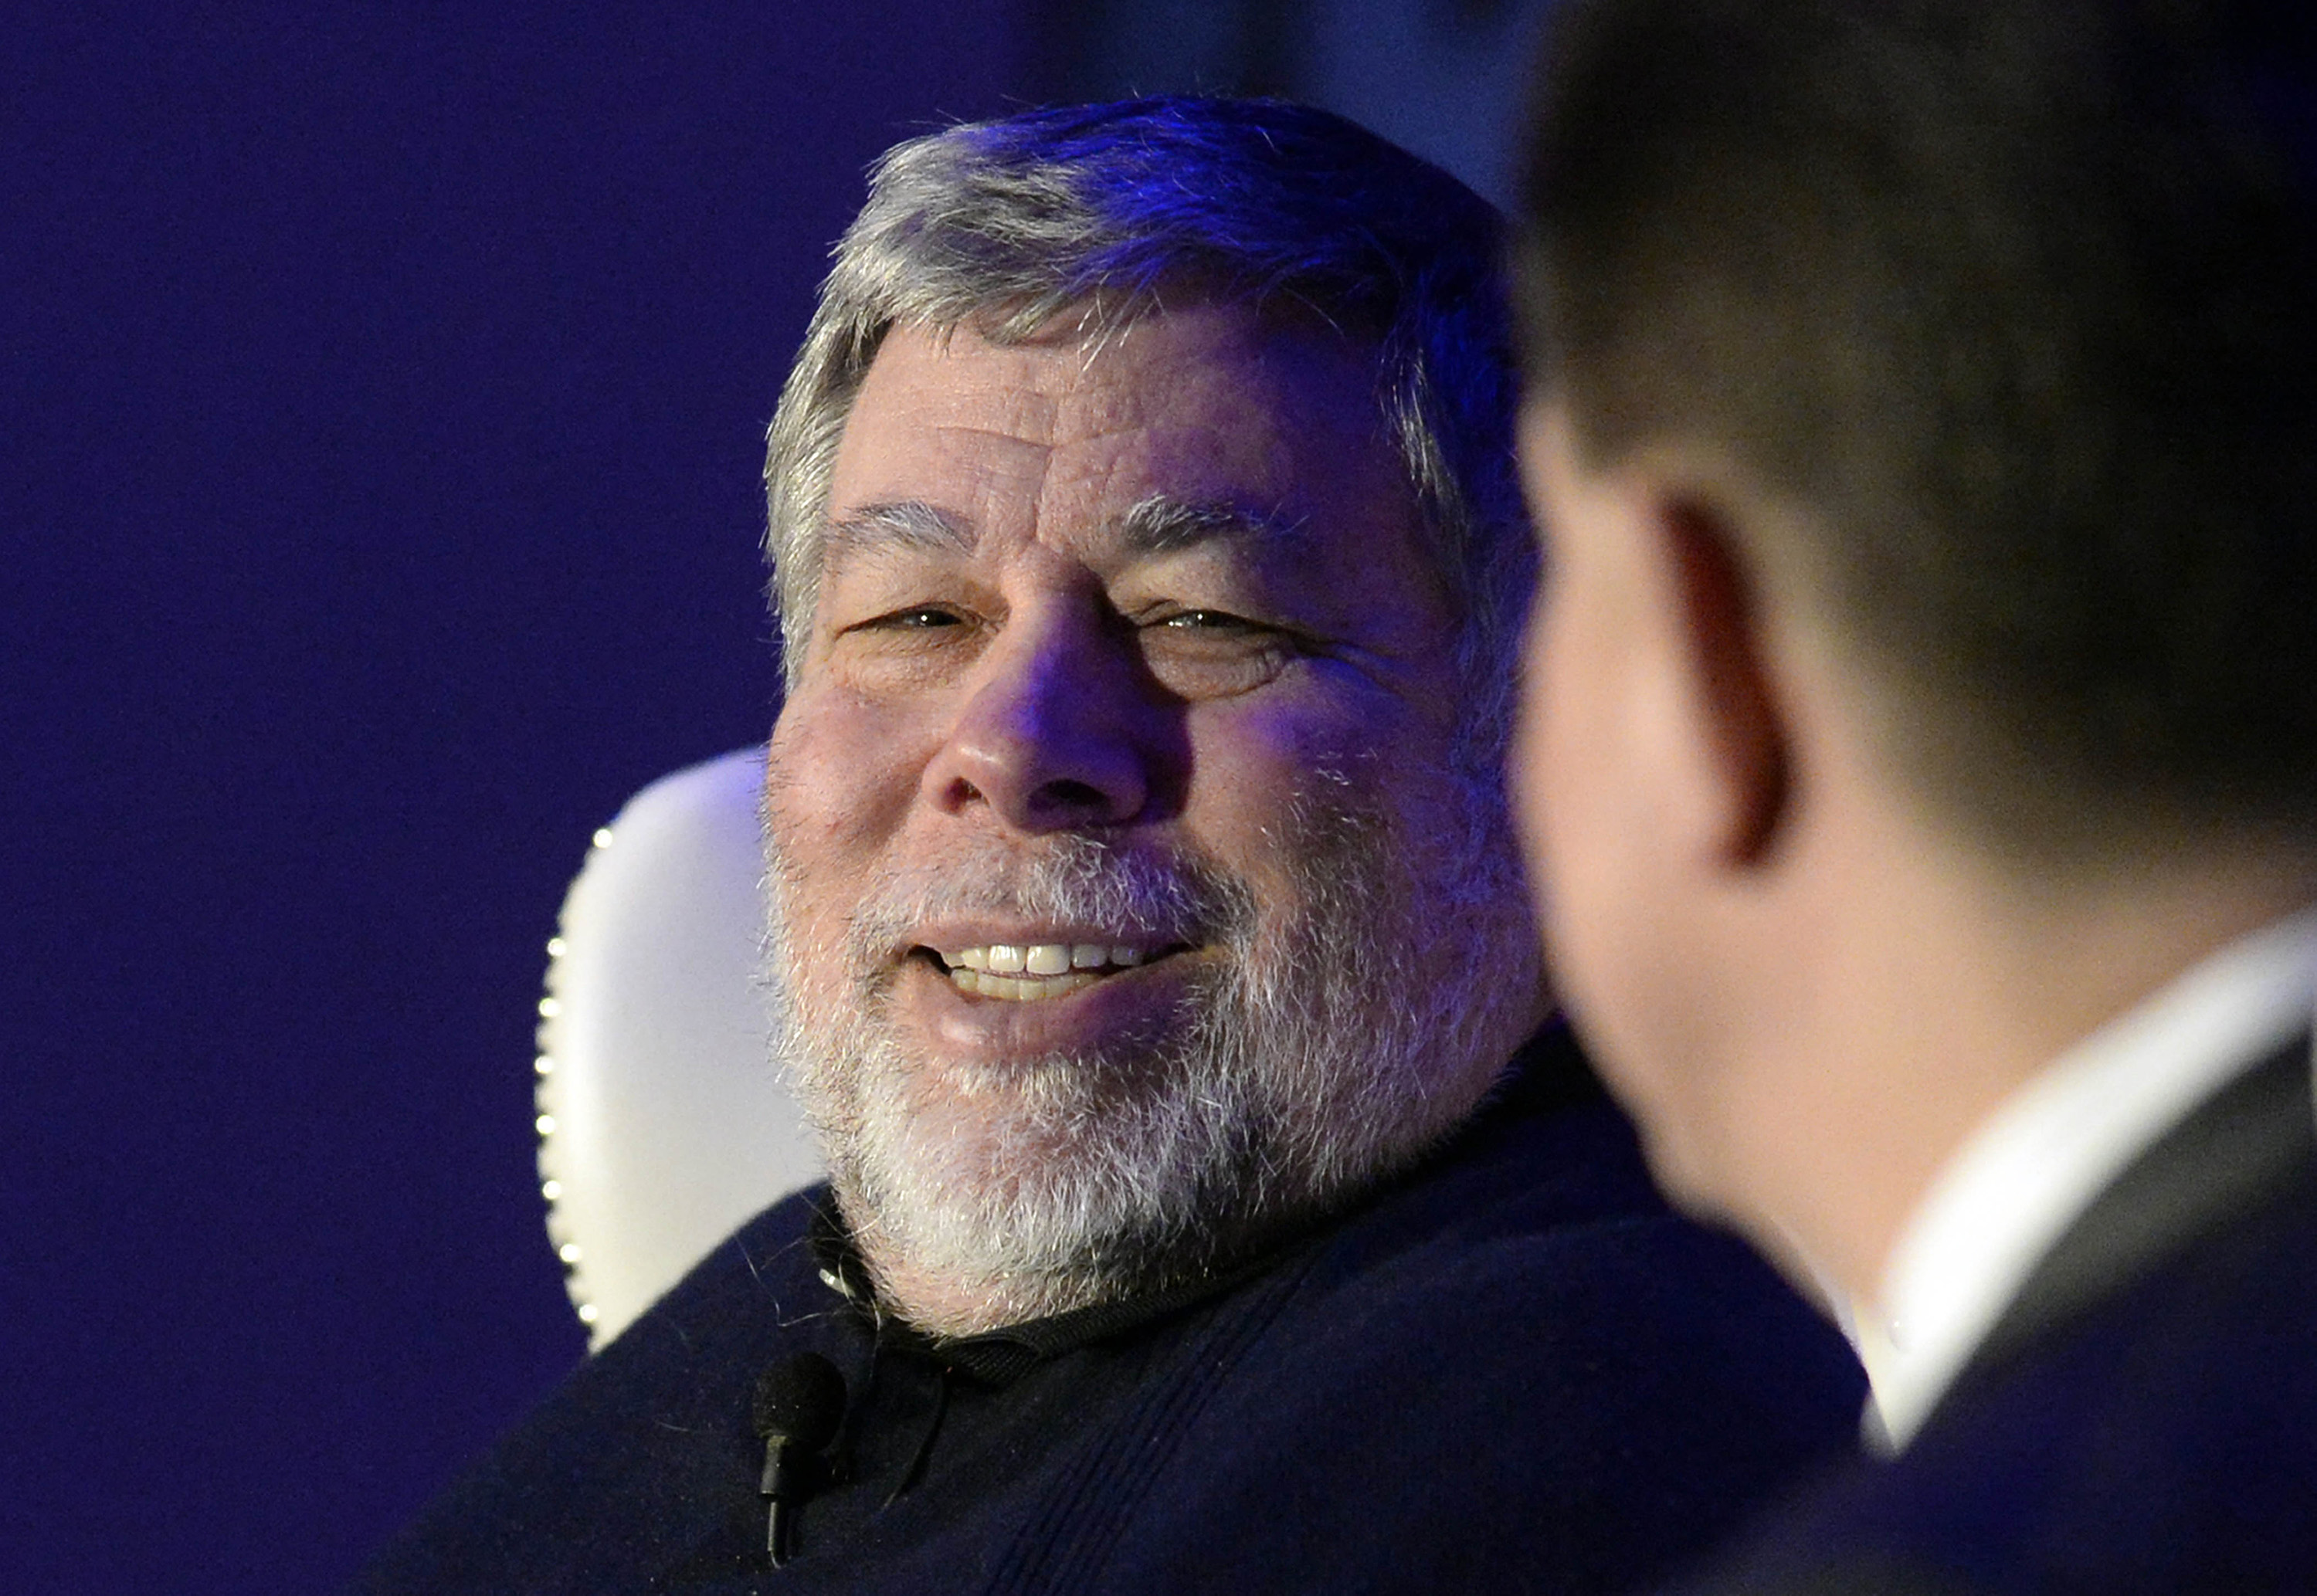 Apple co-founder Steve Wozniak, left, smiles as he answers a question from moderator Mike McGuire during the keynote luncheon of the 9th annual Southeast Venture Conference and Digital Summit Charlotte at the Le Meridien Charlotte on Wednesday, April 1, 2015, in Charlotte, N.C.